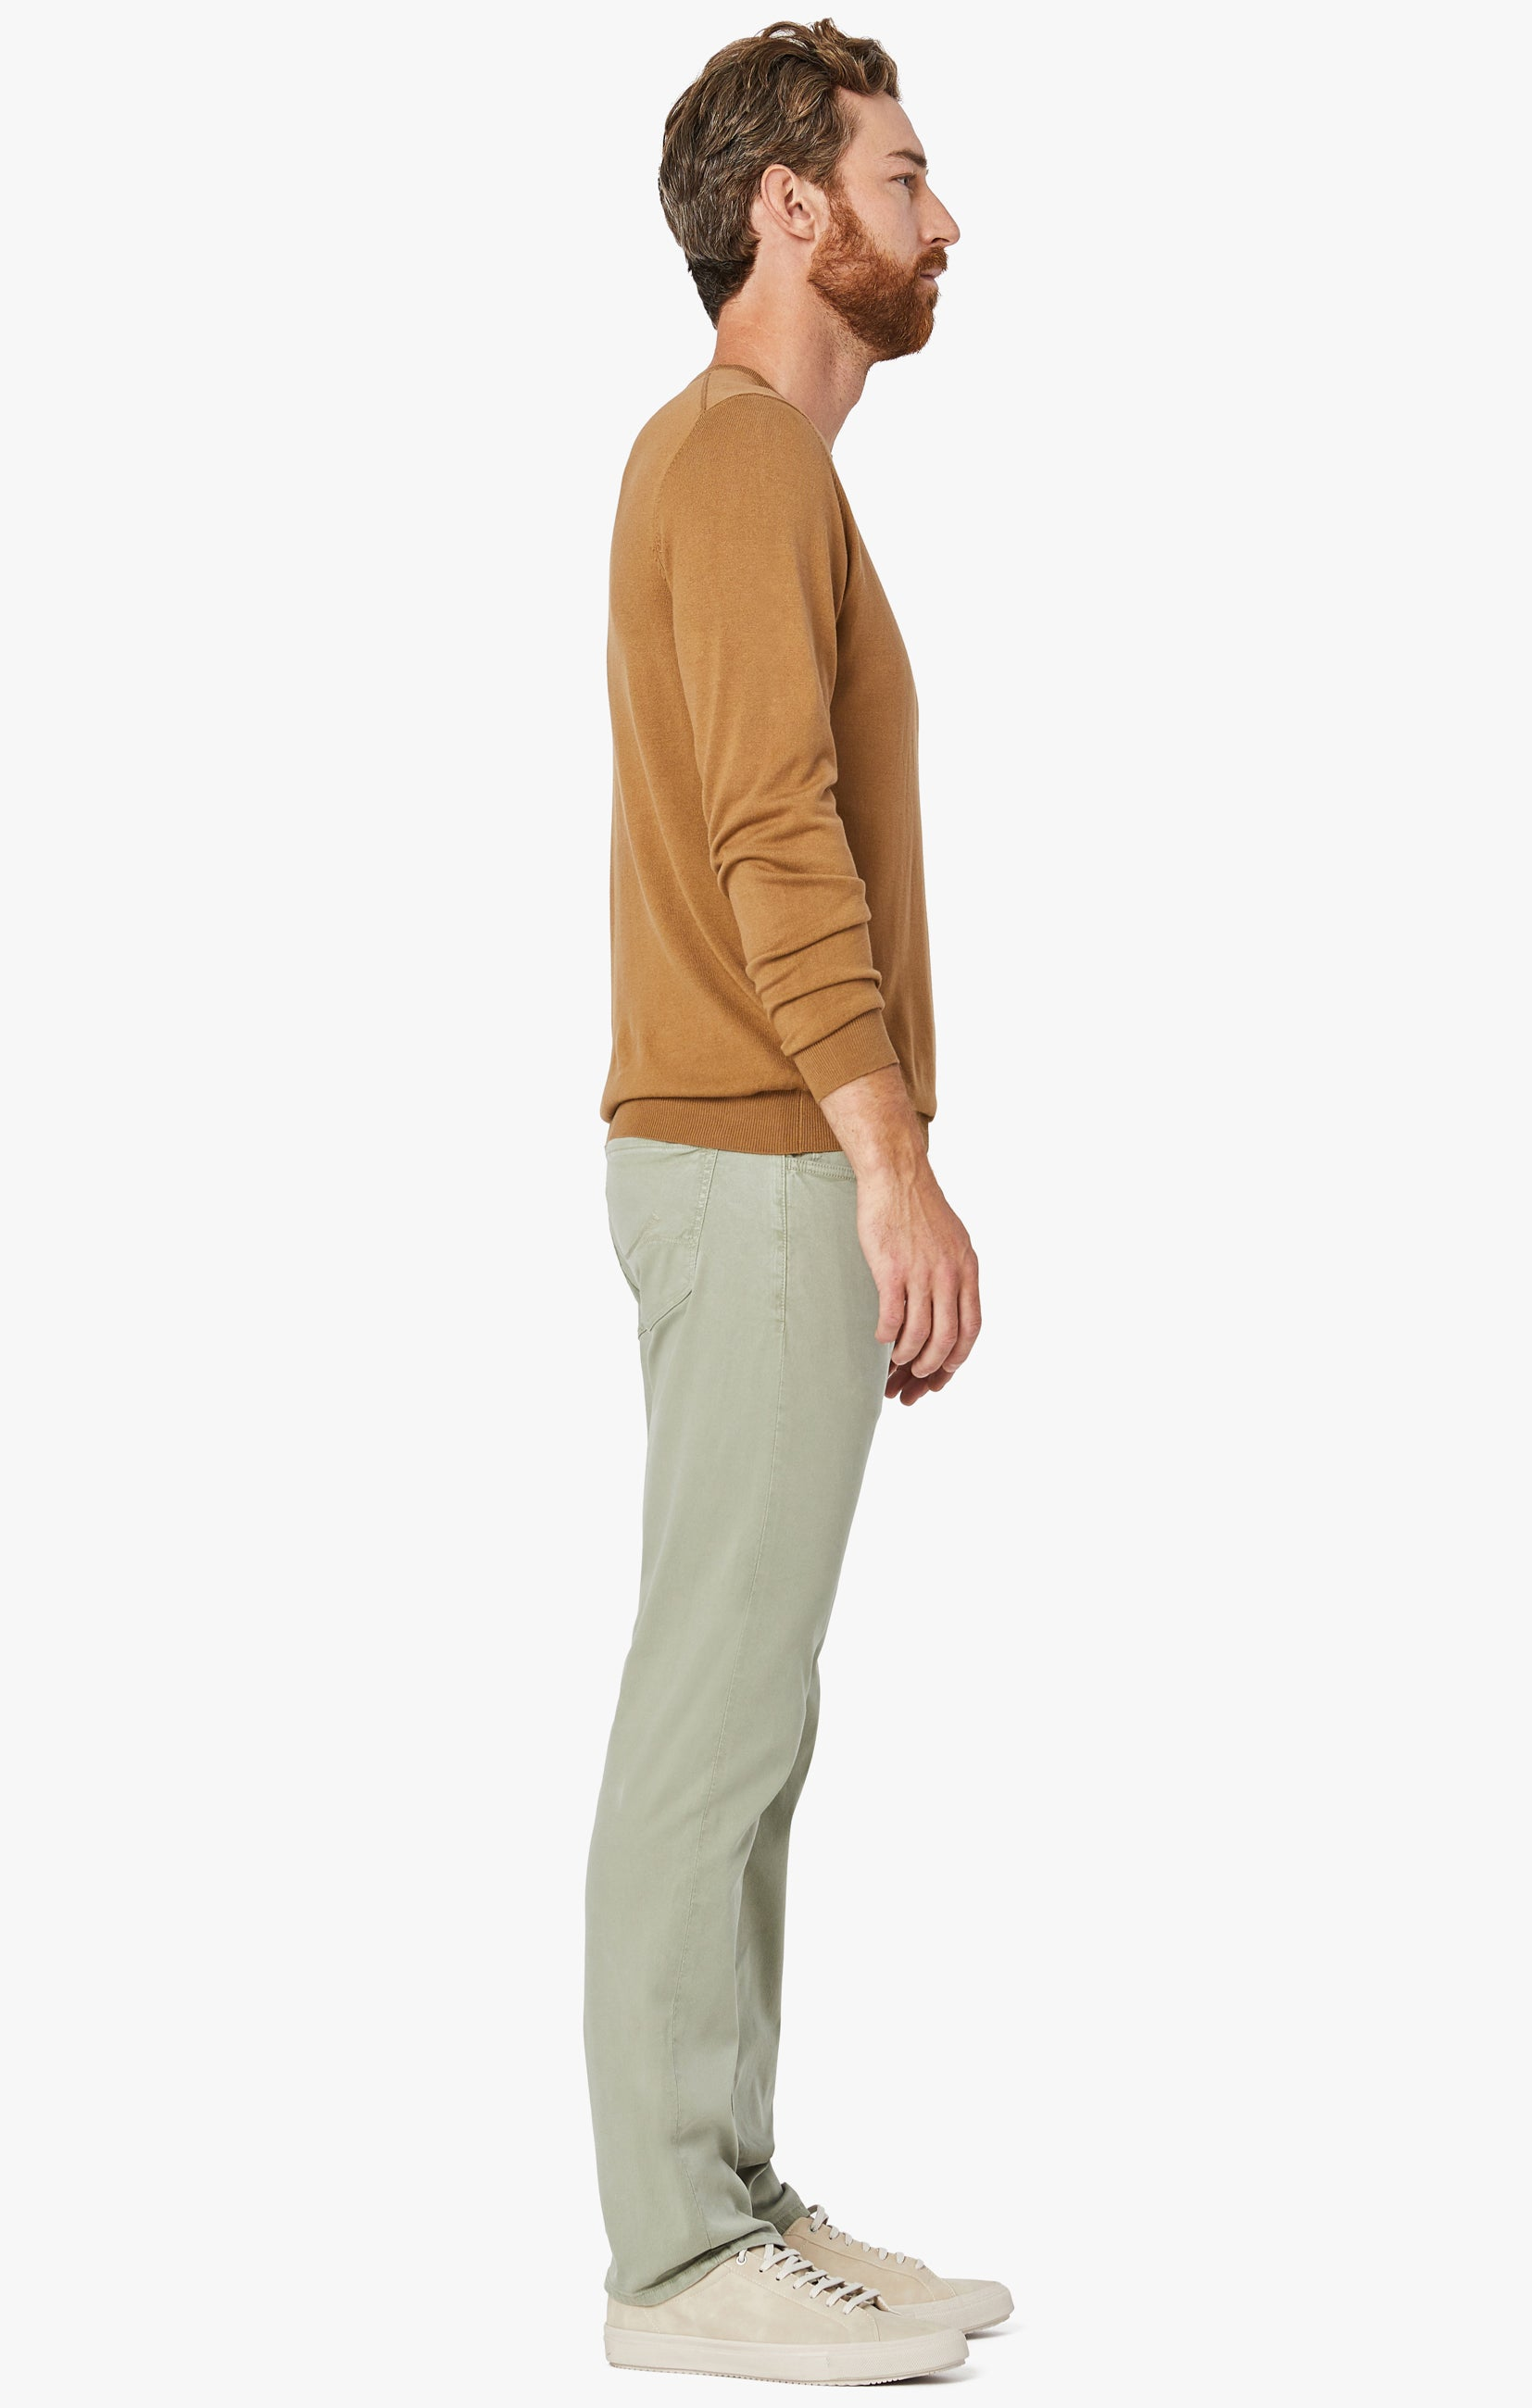 Courage Straight Leg Pants in Sage Soft Touch Image 3